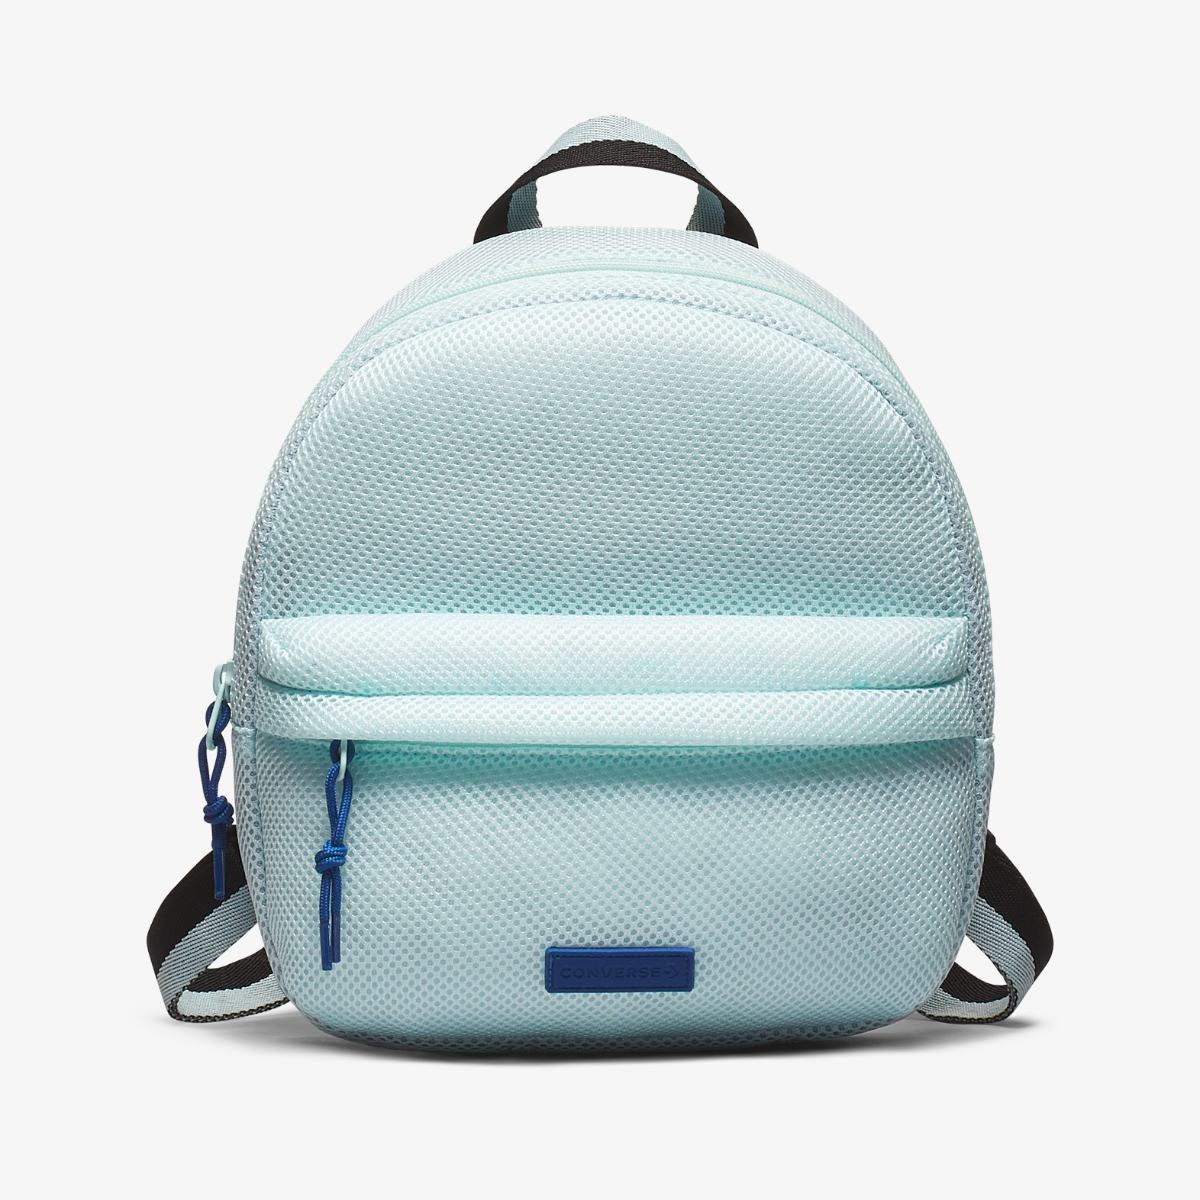 Рюкзак Converse MESH AS IF BACKPACK TEAL TINT